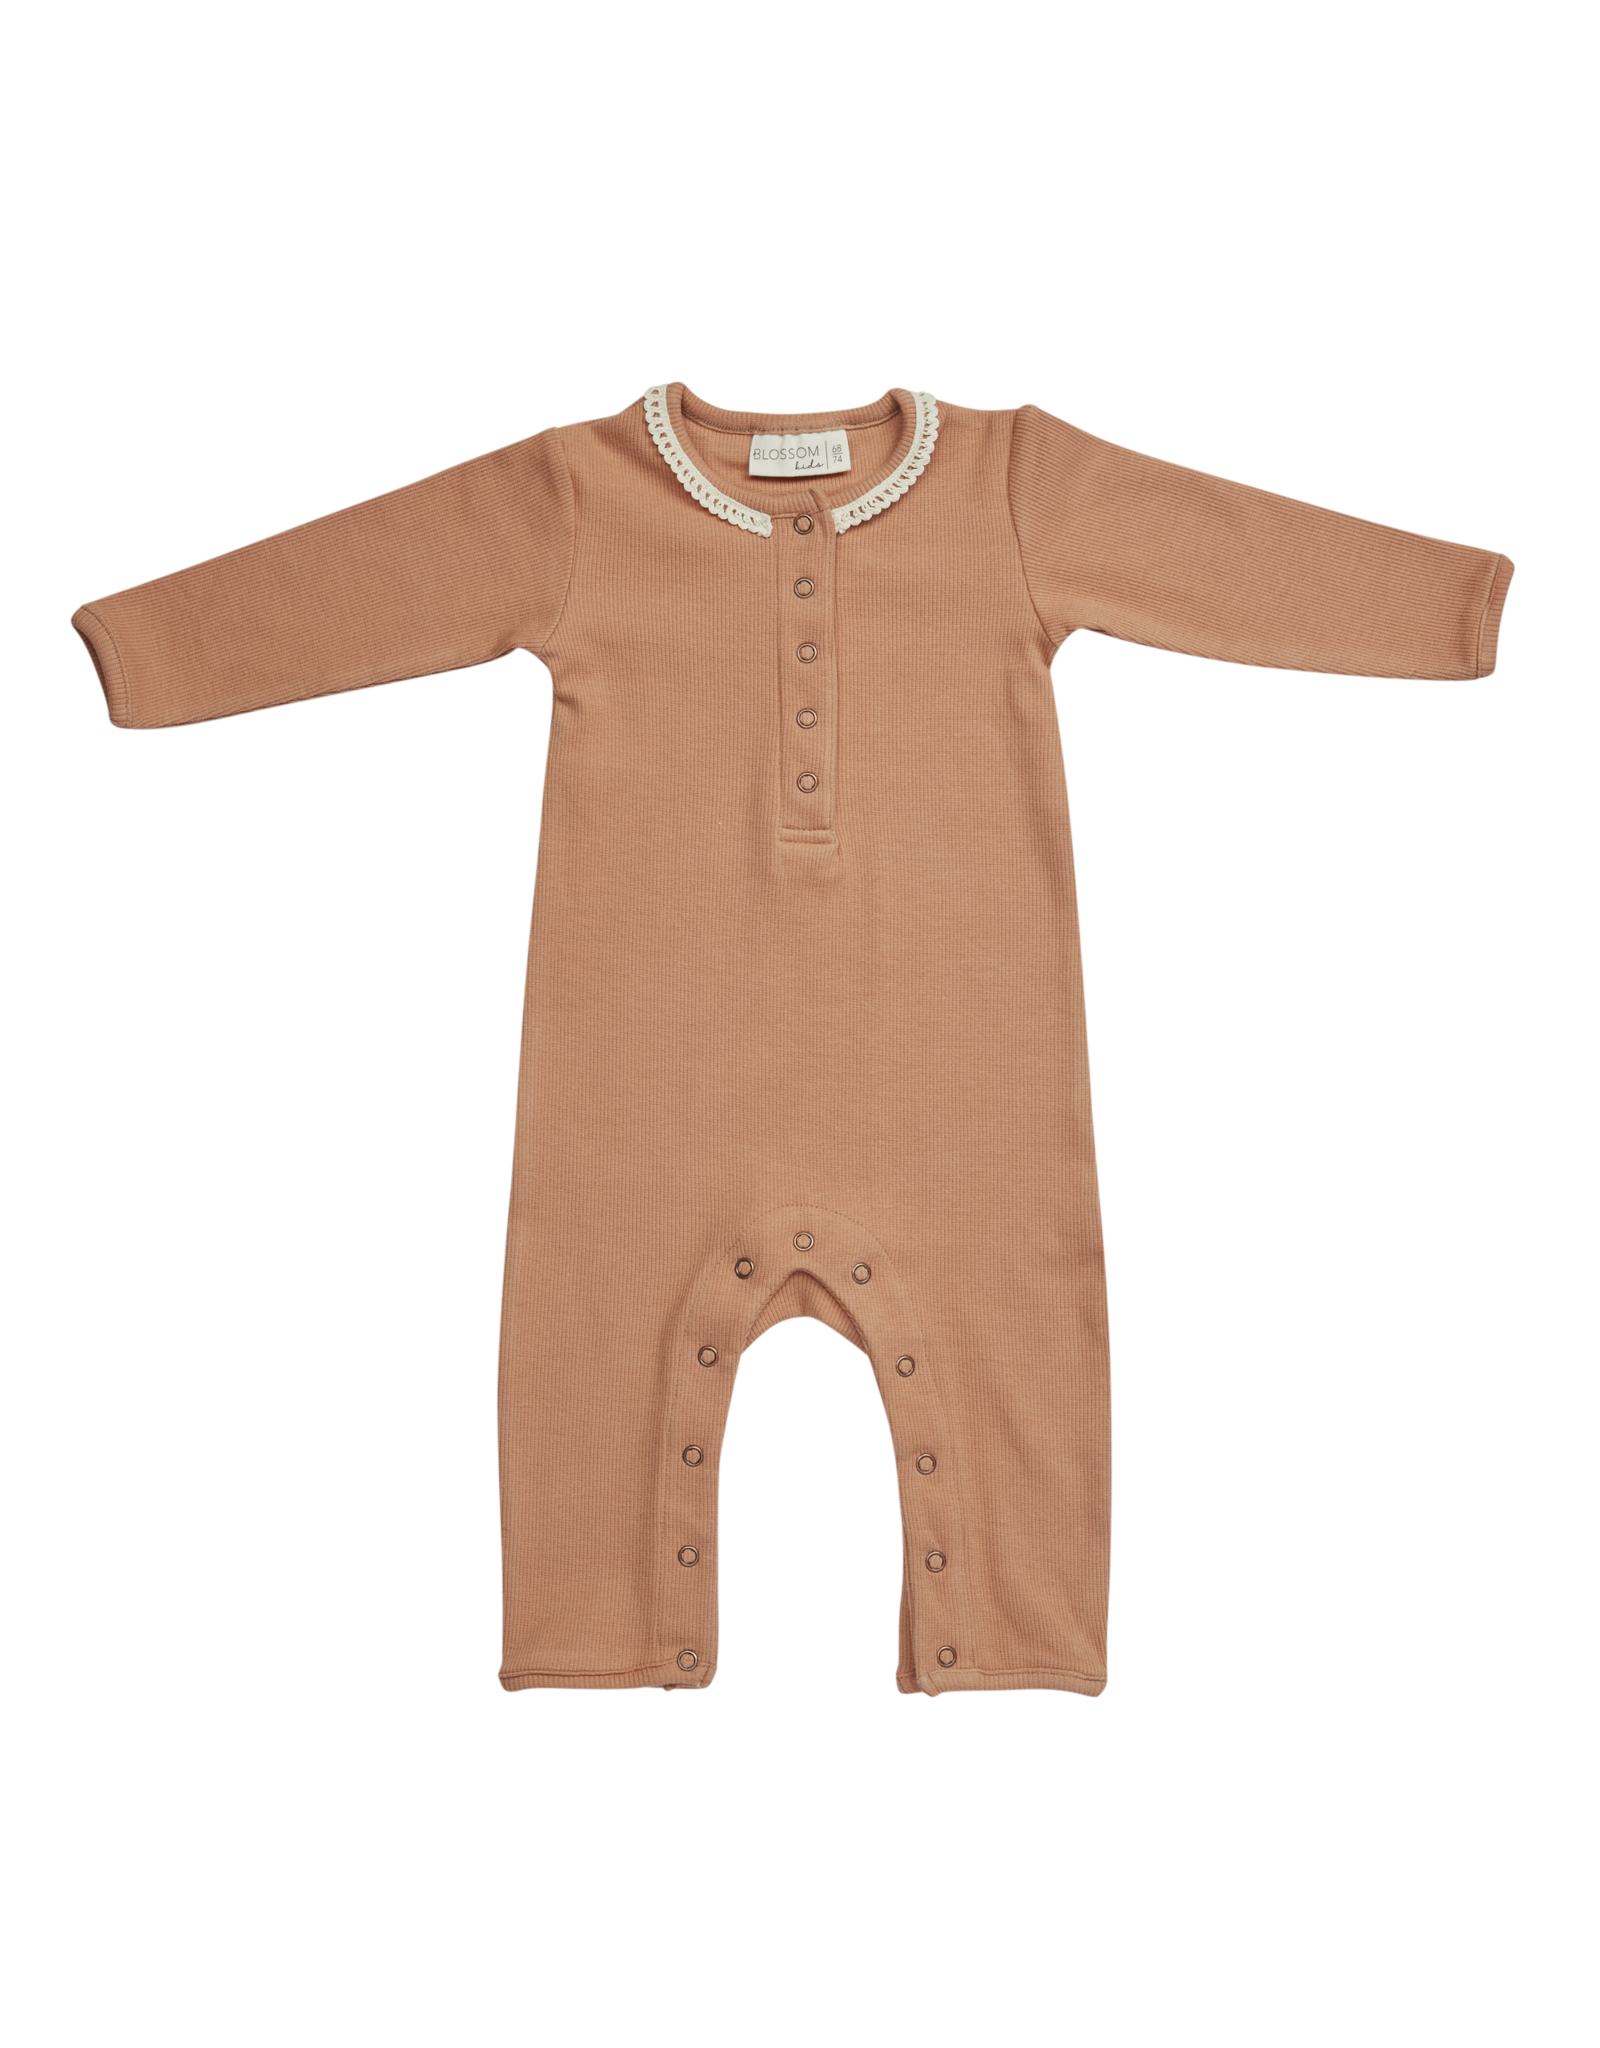 Blossom Kids Playsuit with lace - Deep Toffee